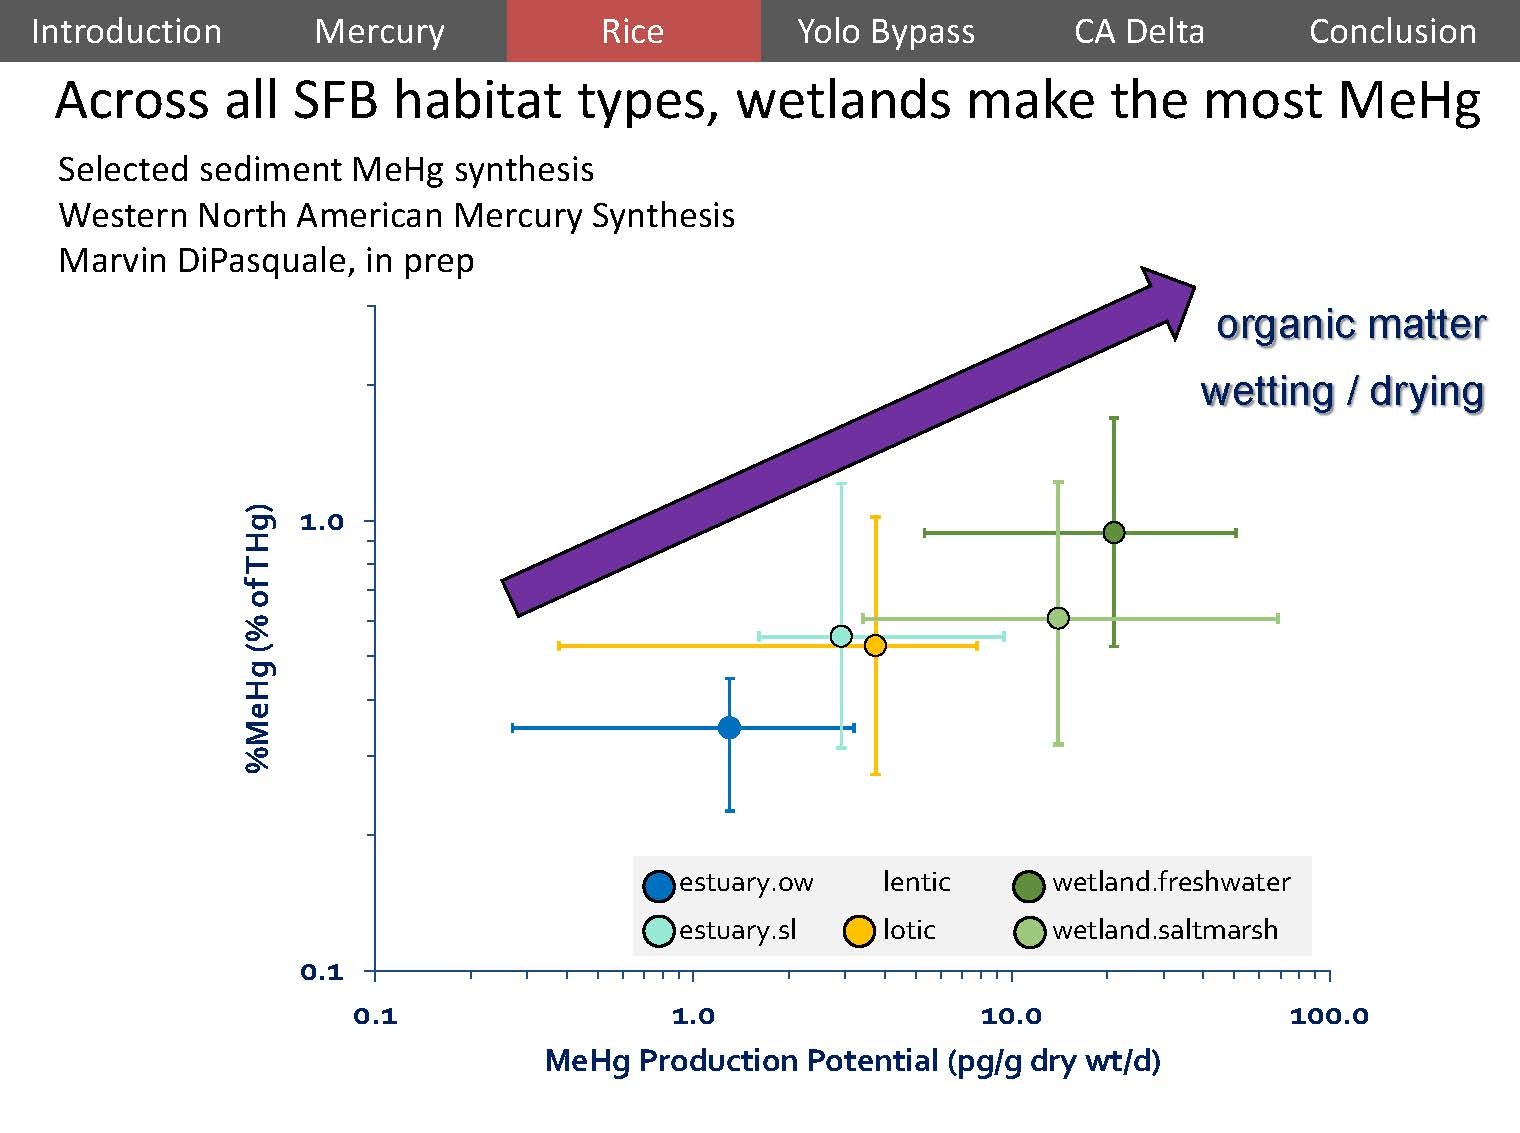 Mercury and rice in the delta lessons linking wetlands to water and dr windham myers presented a chart showing methylmercury production produced with data from mark marvin dipasquale theres over a thousand data points in geenschuldenfo Image collections